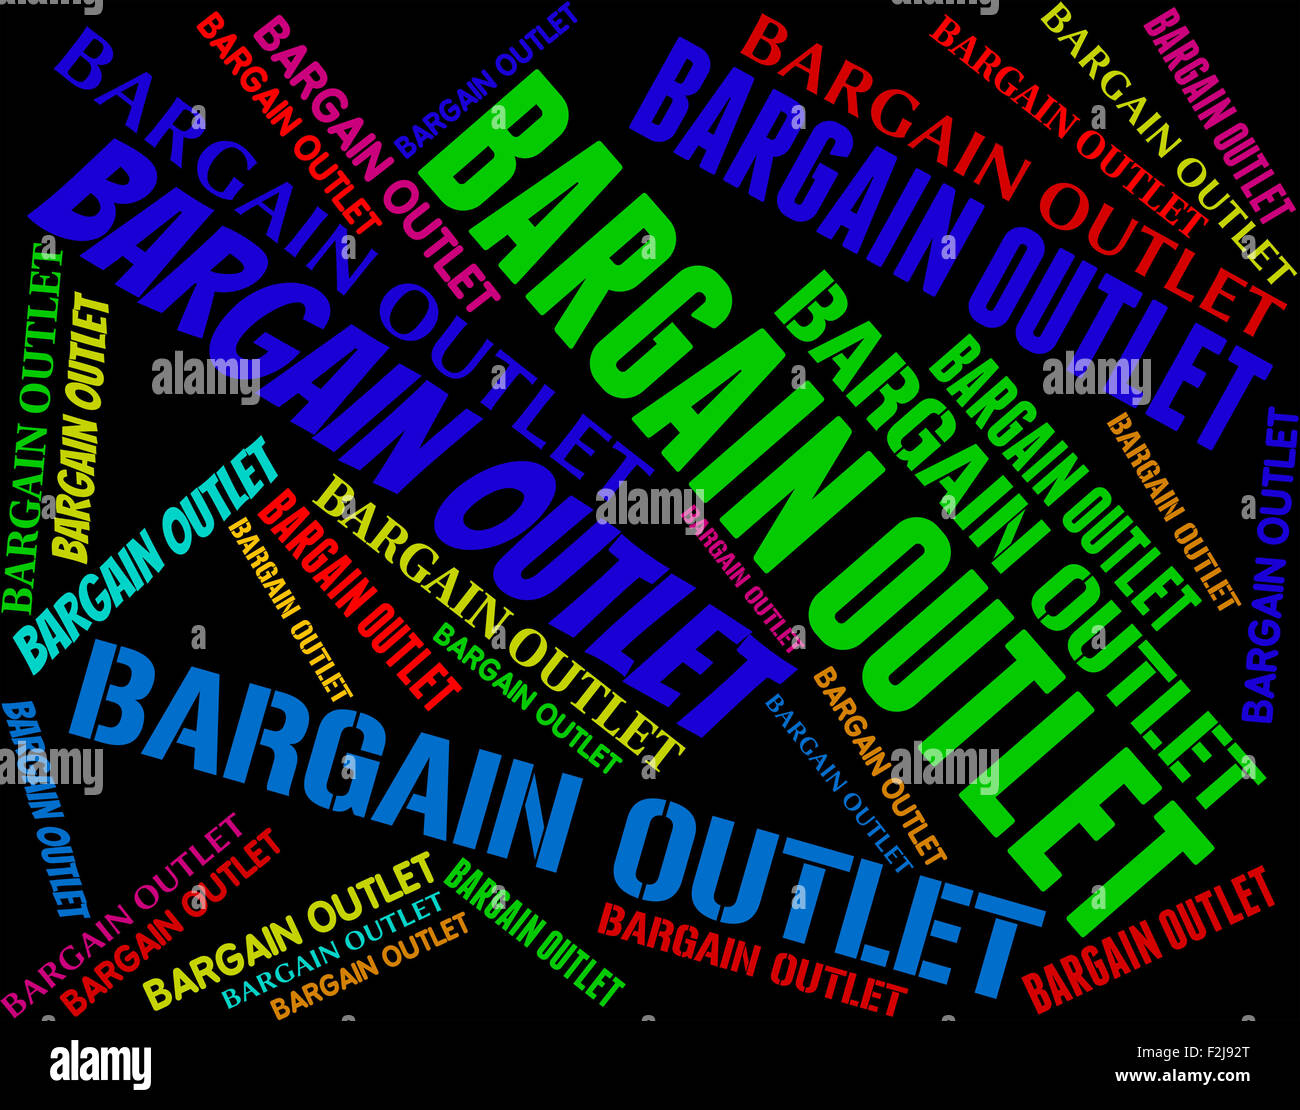 Bargain Outlet Meaning Store Words And Promotional Stock Photo